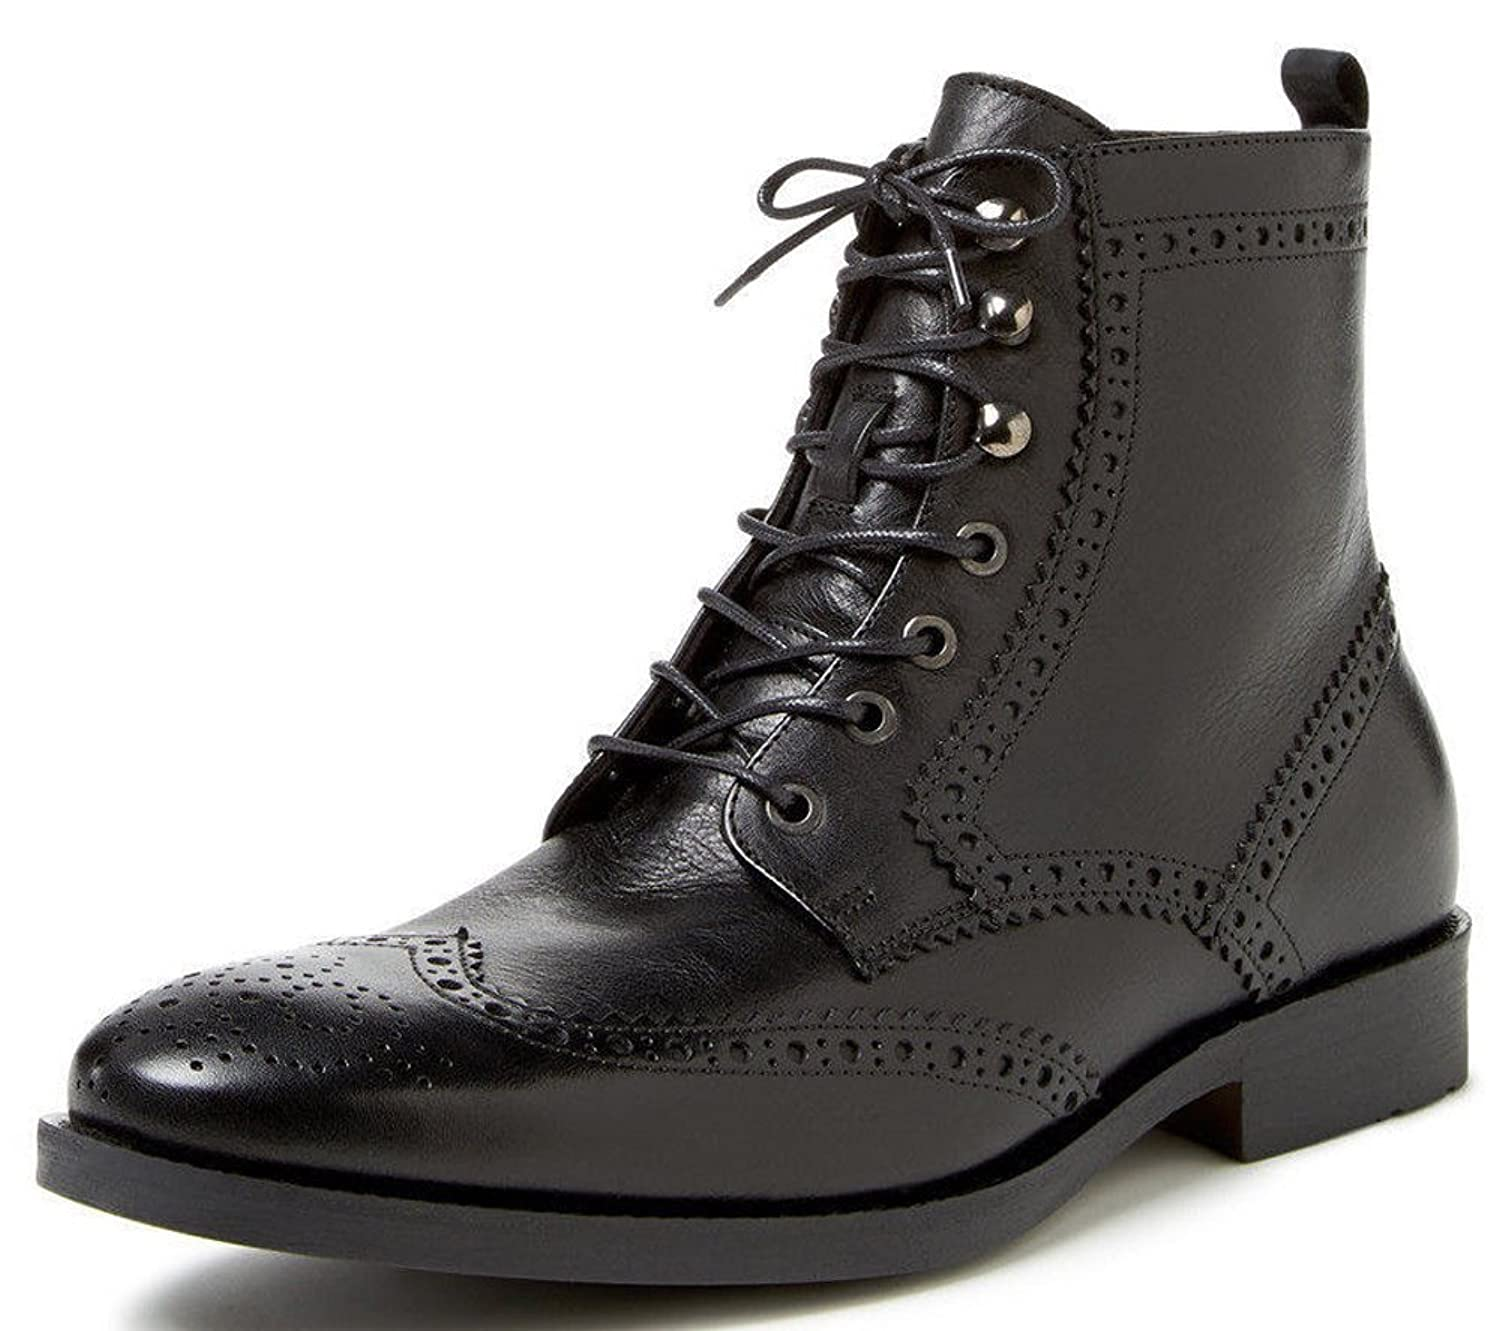 a.testoni BASIC Brougued Linz Calf Wingtip Boots Size 9 US